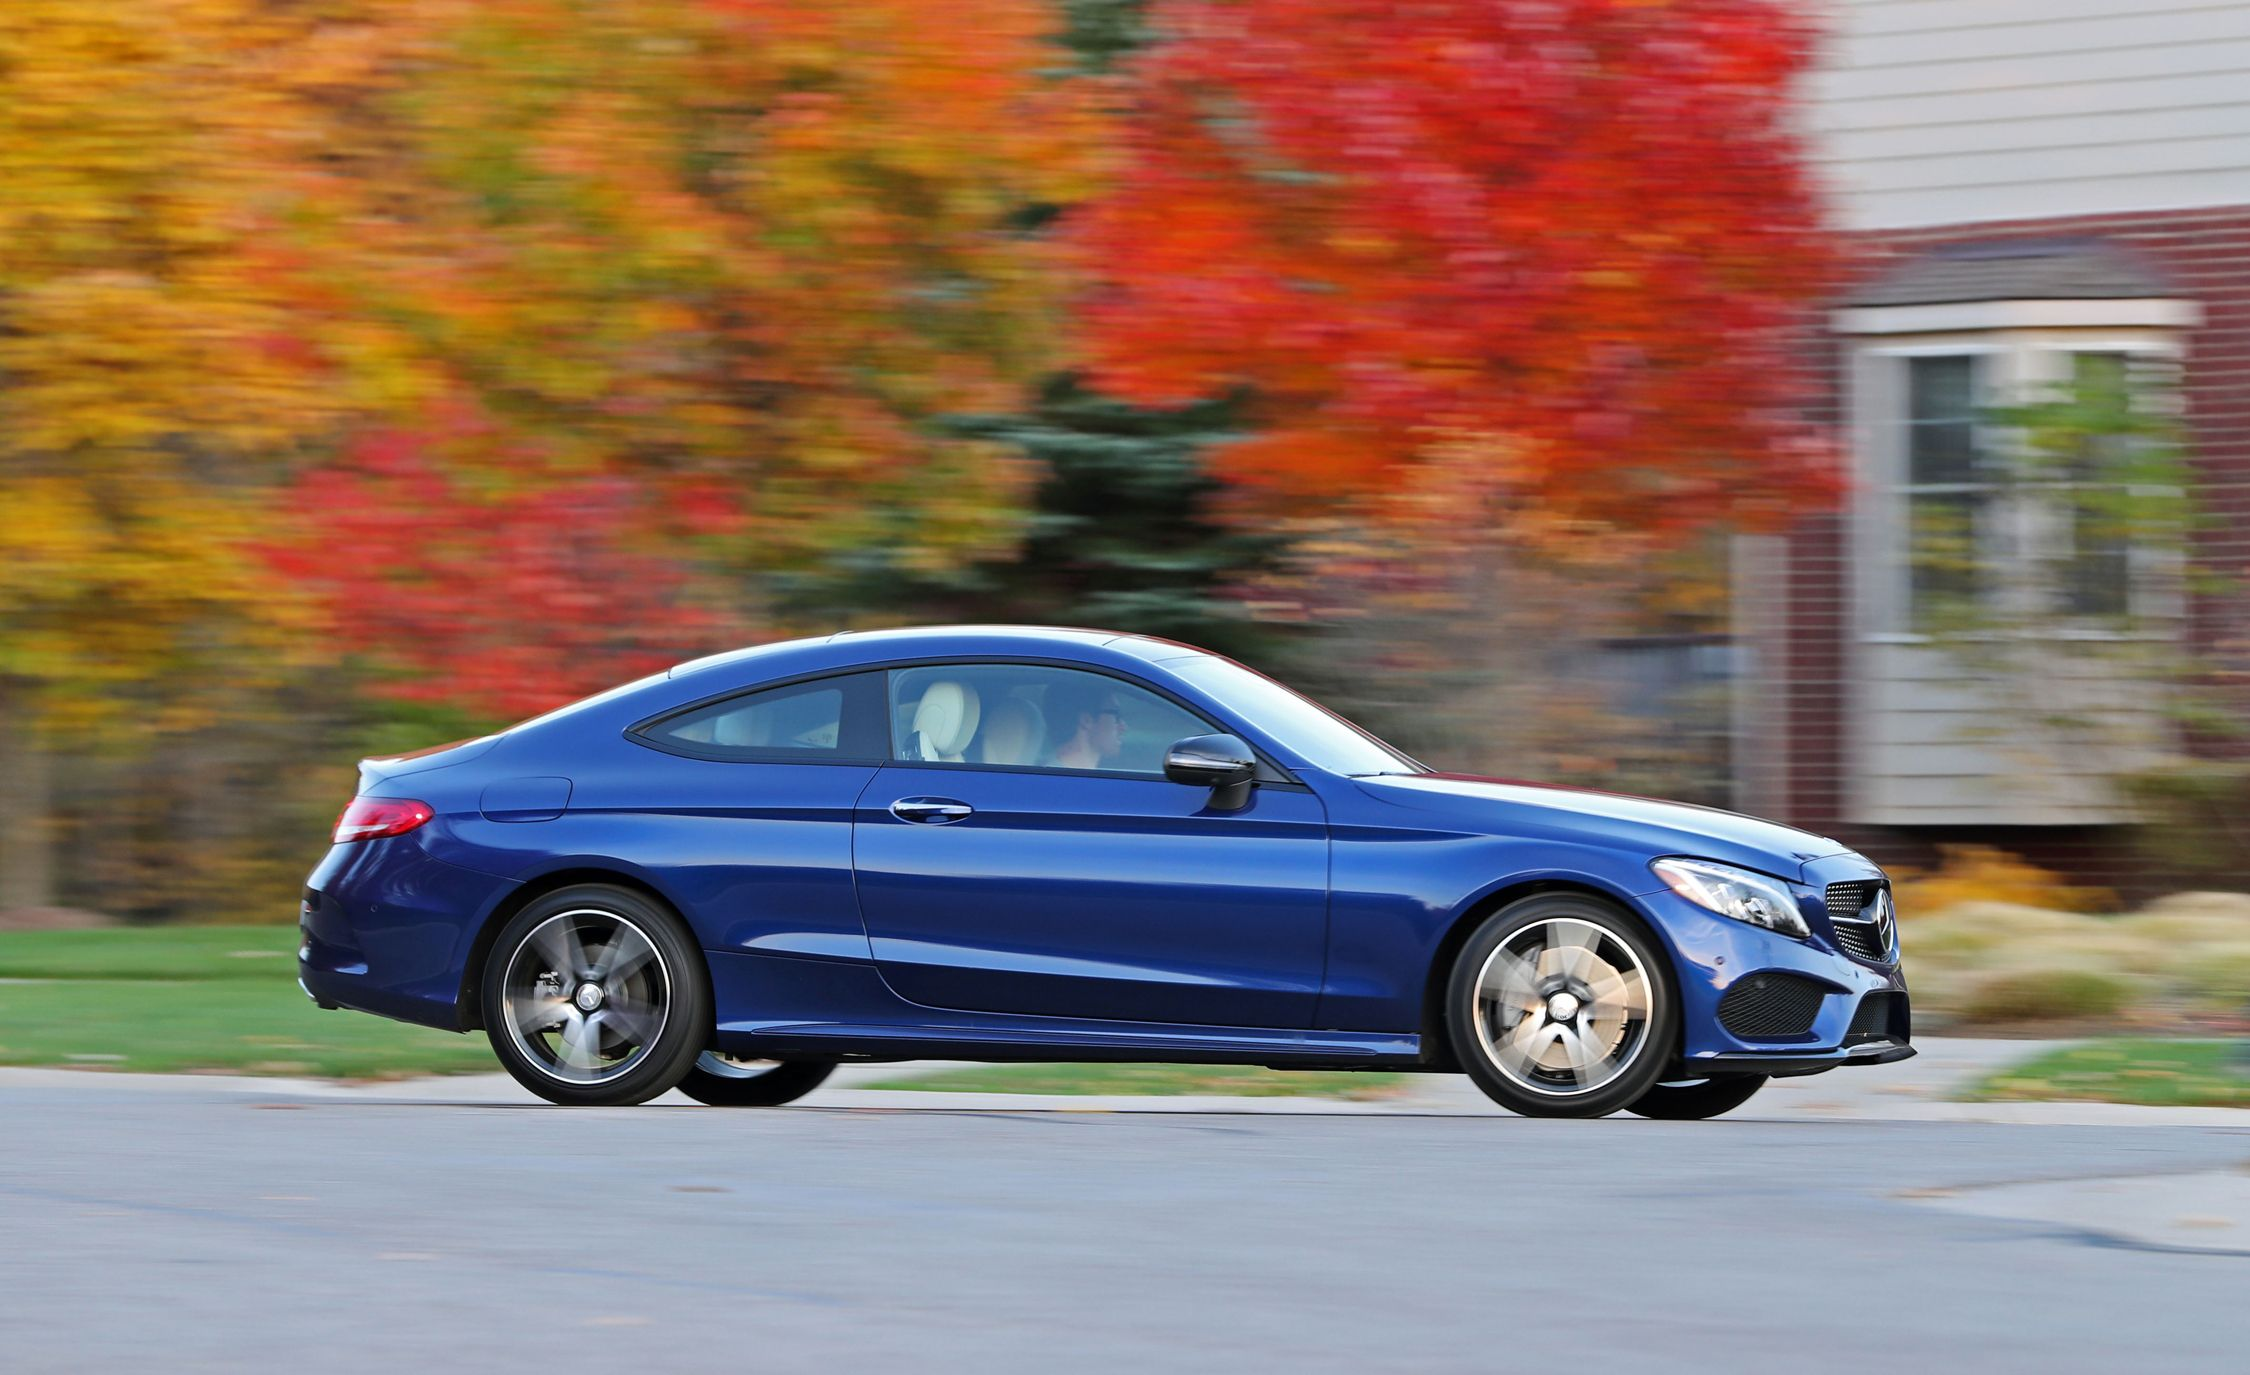 Mercedes Benz C class Reviews